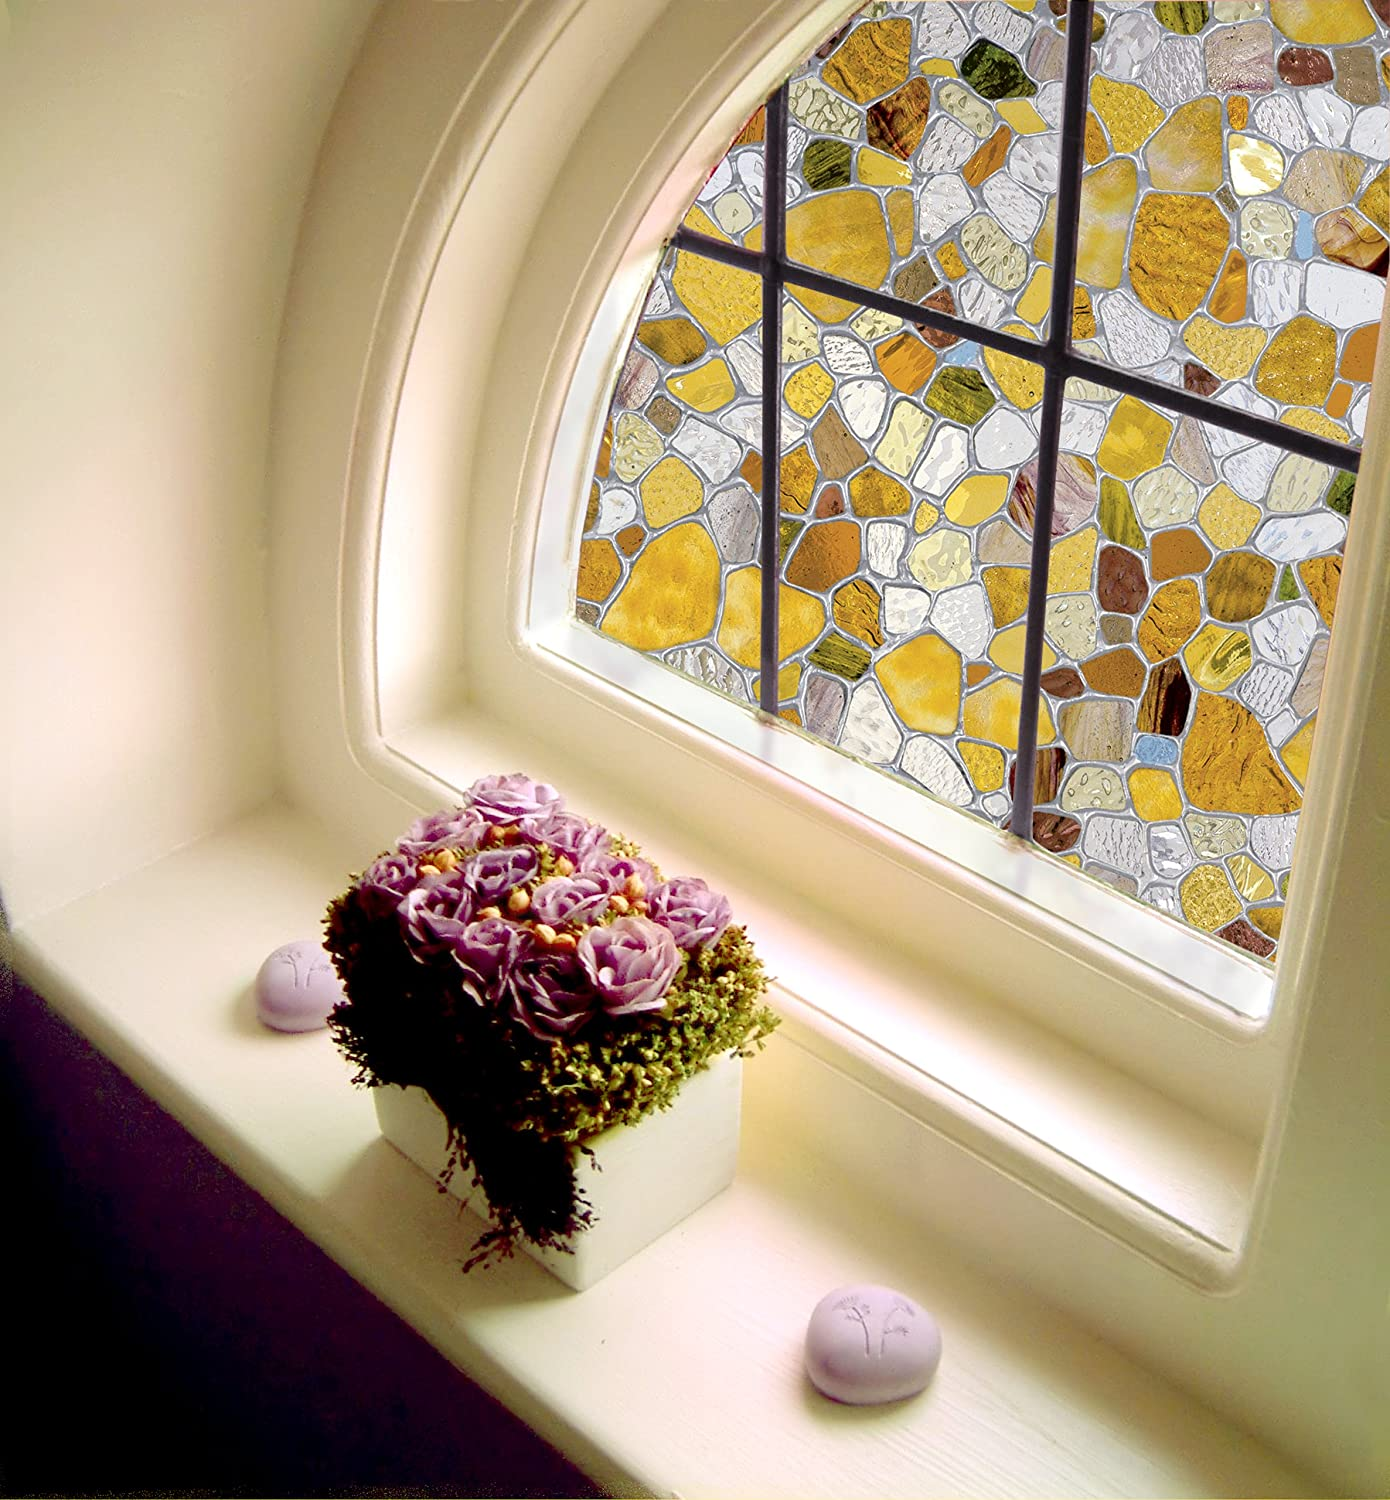 First stained glass window film 24 by 36 inches new for Victorian stained glass window film